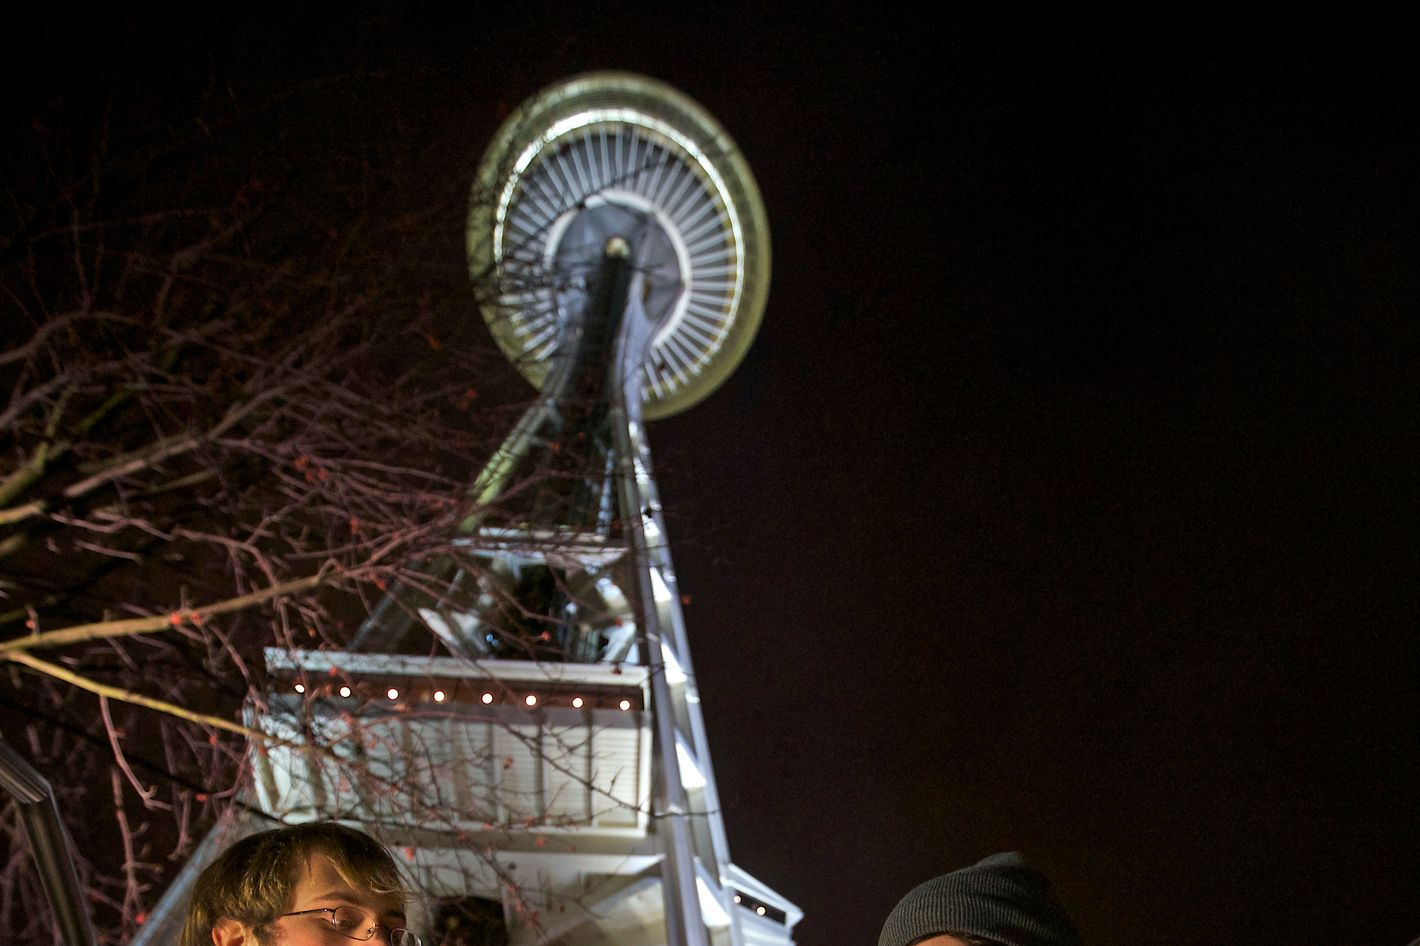 Dustin, left, and Paul of Tacoma, Washington, both of which declined to give their last names, share a water pip underneath the Space Needle shortly after a law legalizing the recreational use of  marijuana took effect on December 6, 2012 in Seattle, Washington.  Voters approved an initiative to decriminalize the recreational use of marijuana making it one of the first states to do so.